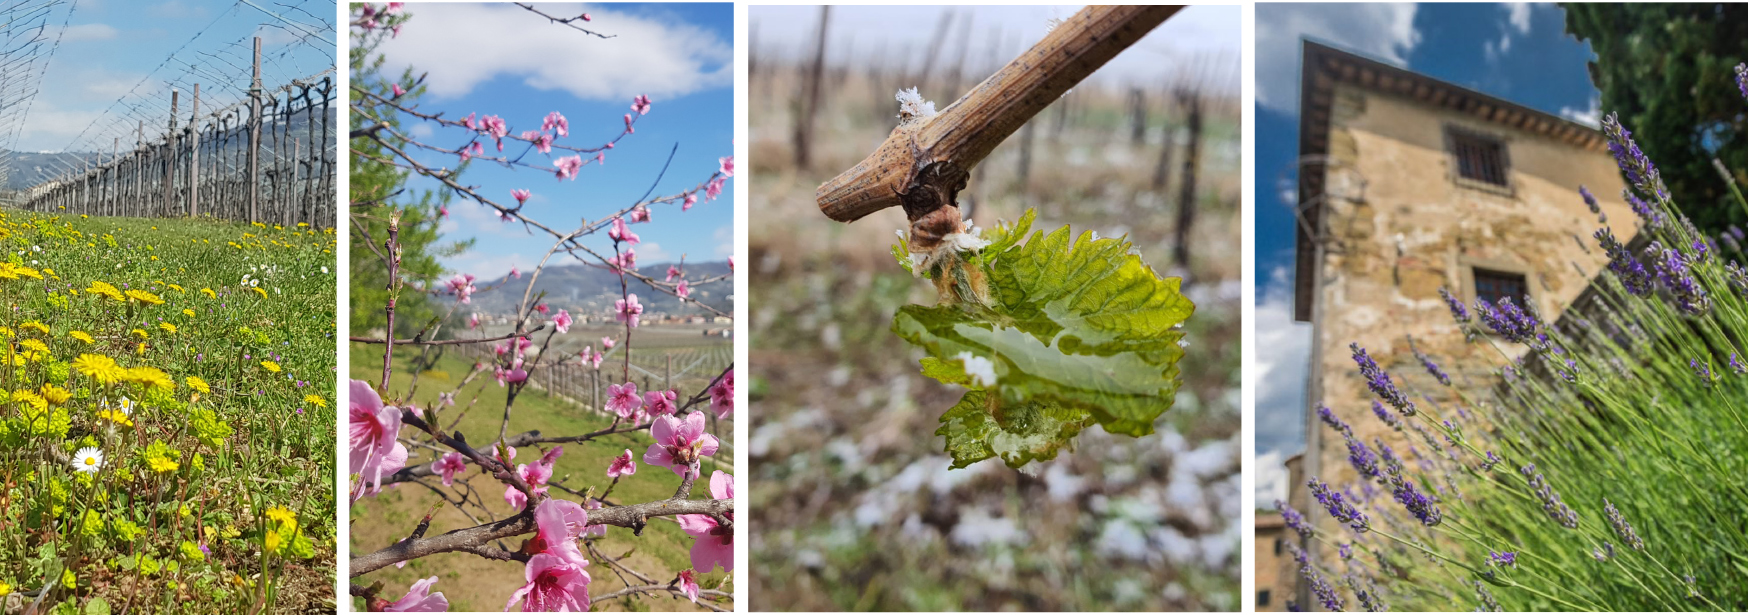 Notes from Italy's vineyards: signs of hope and renewal